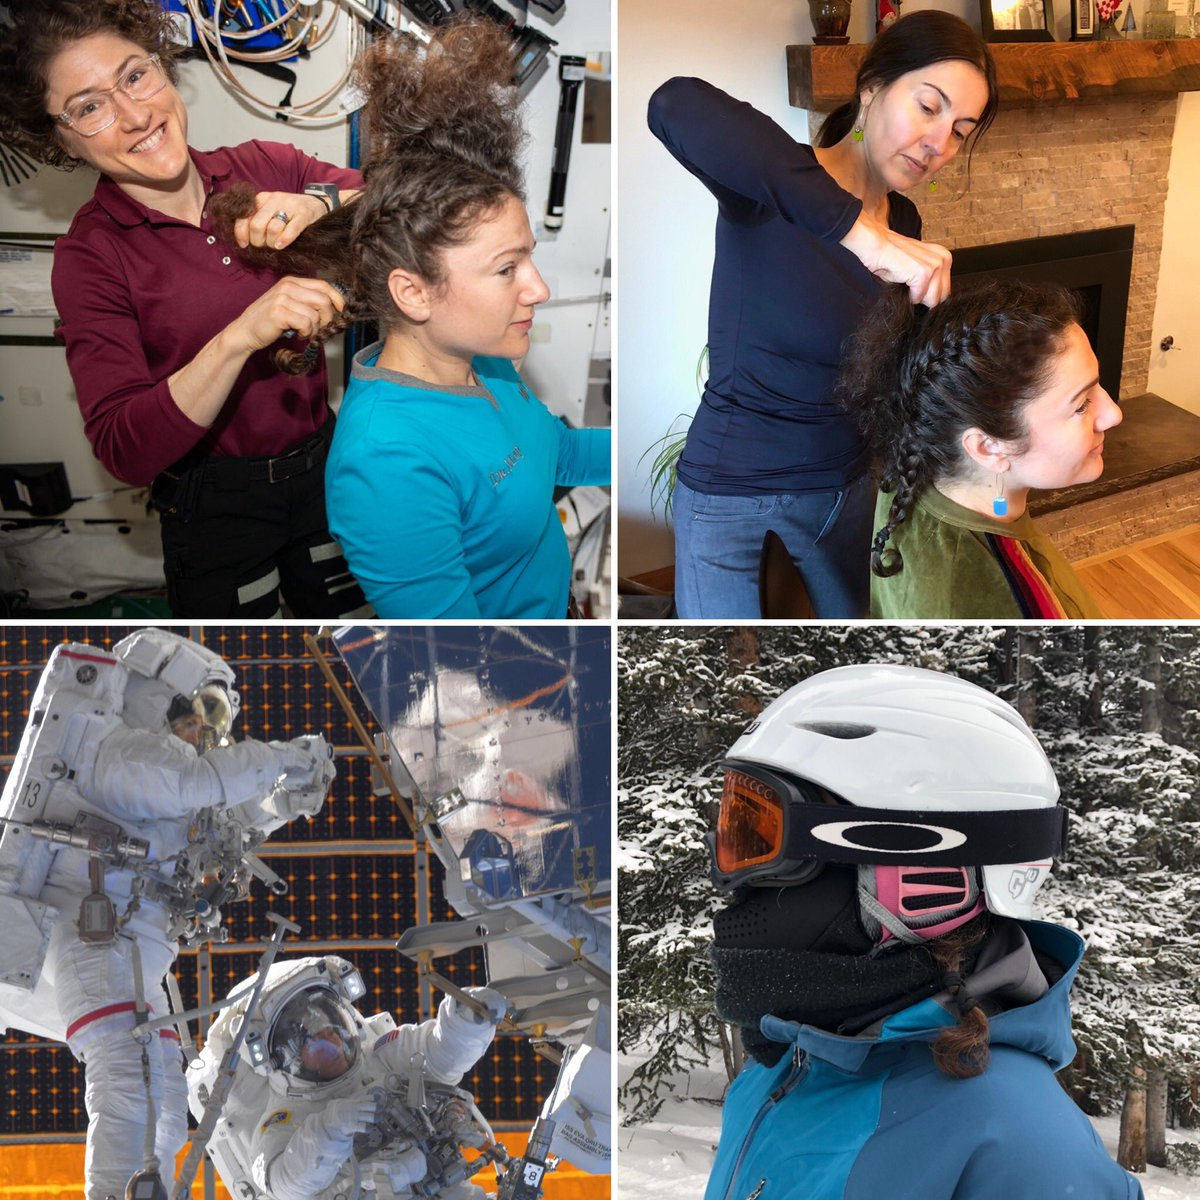 The French braid - a reliable classic for the active and often helmeted gal. One year ago my space sister @Astro_Christina set us up for @Space_Station spacewalking success, recently recreated by my actual sister for success in the snow. Work hard, play hard! #tbt #ski #sisters